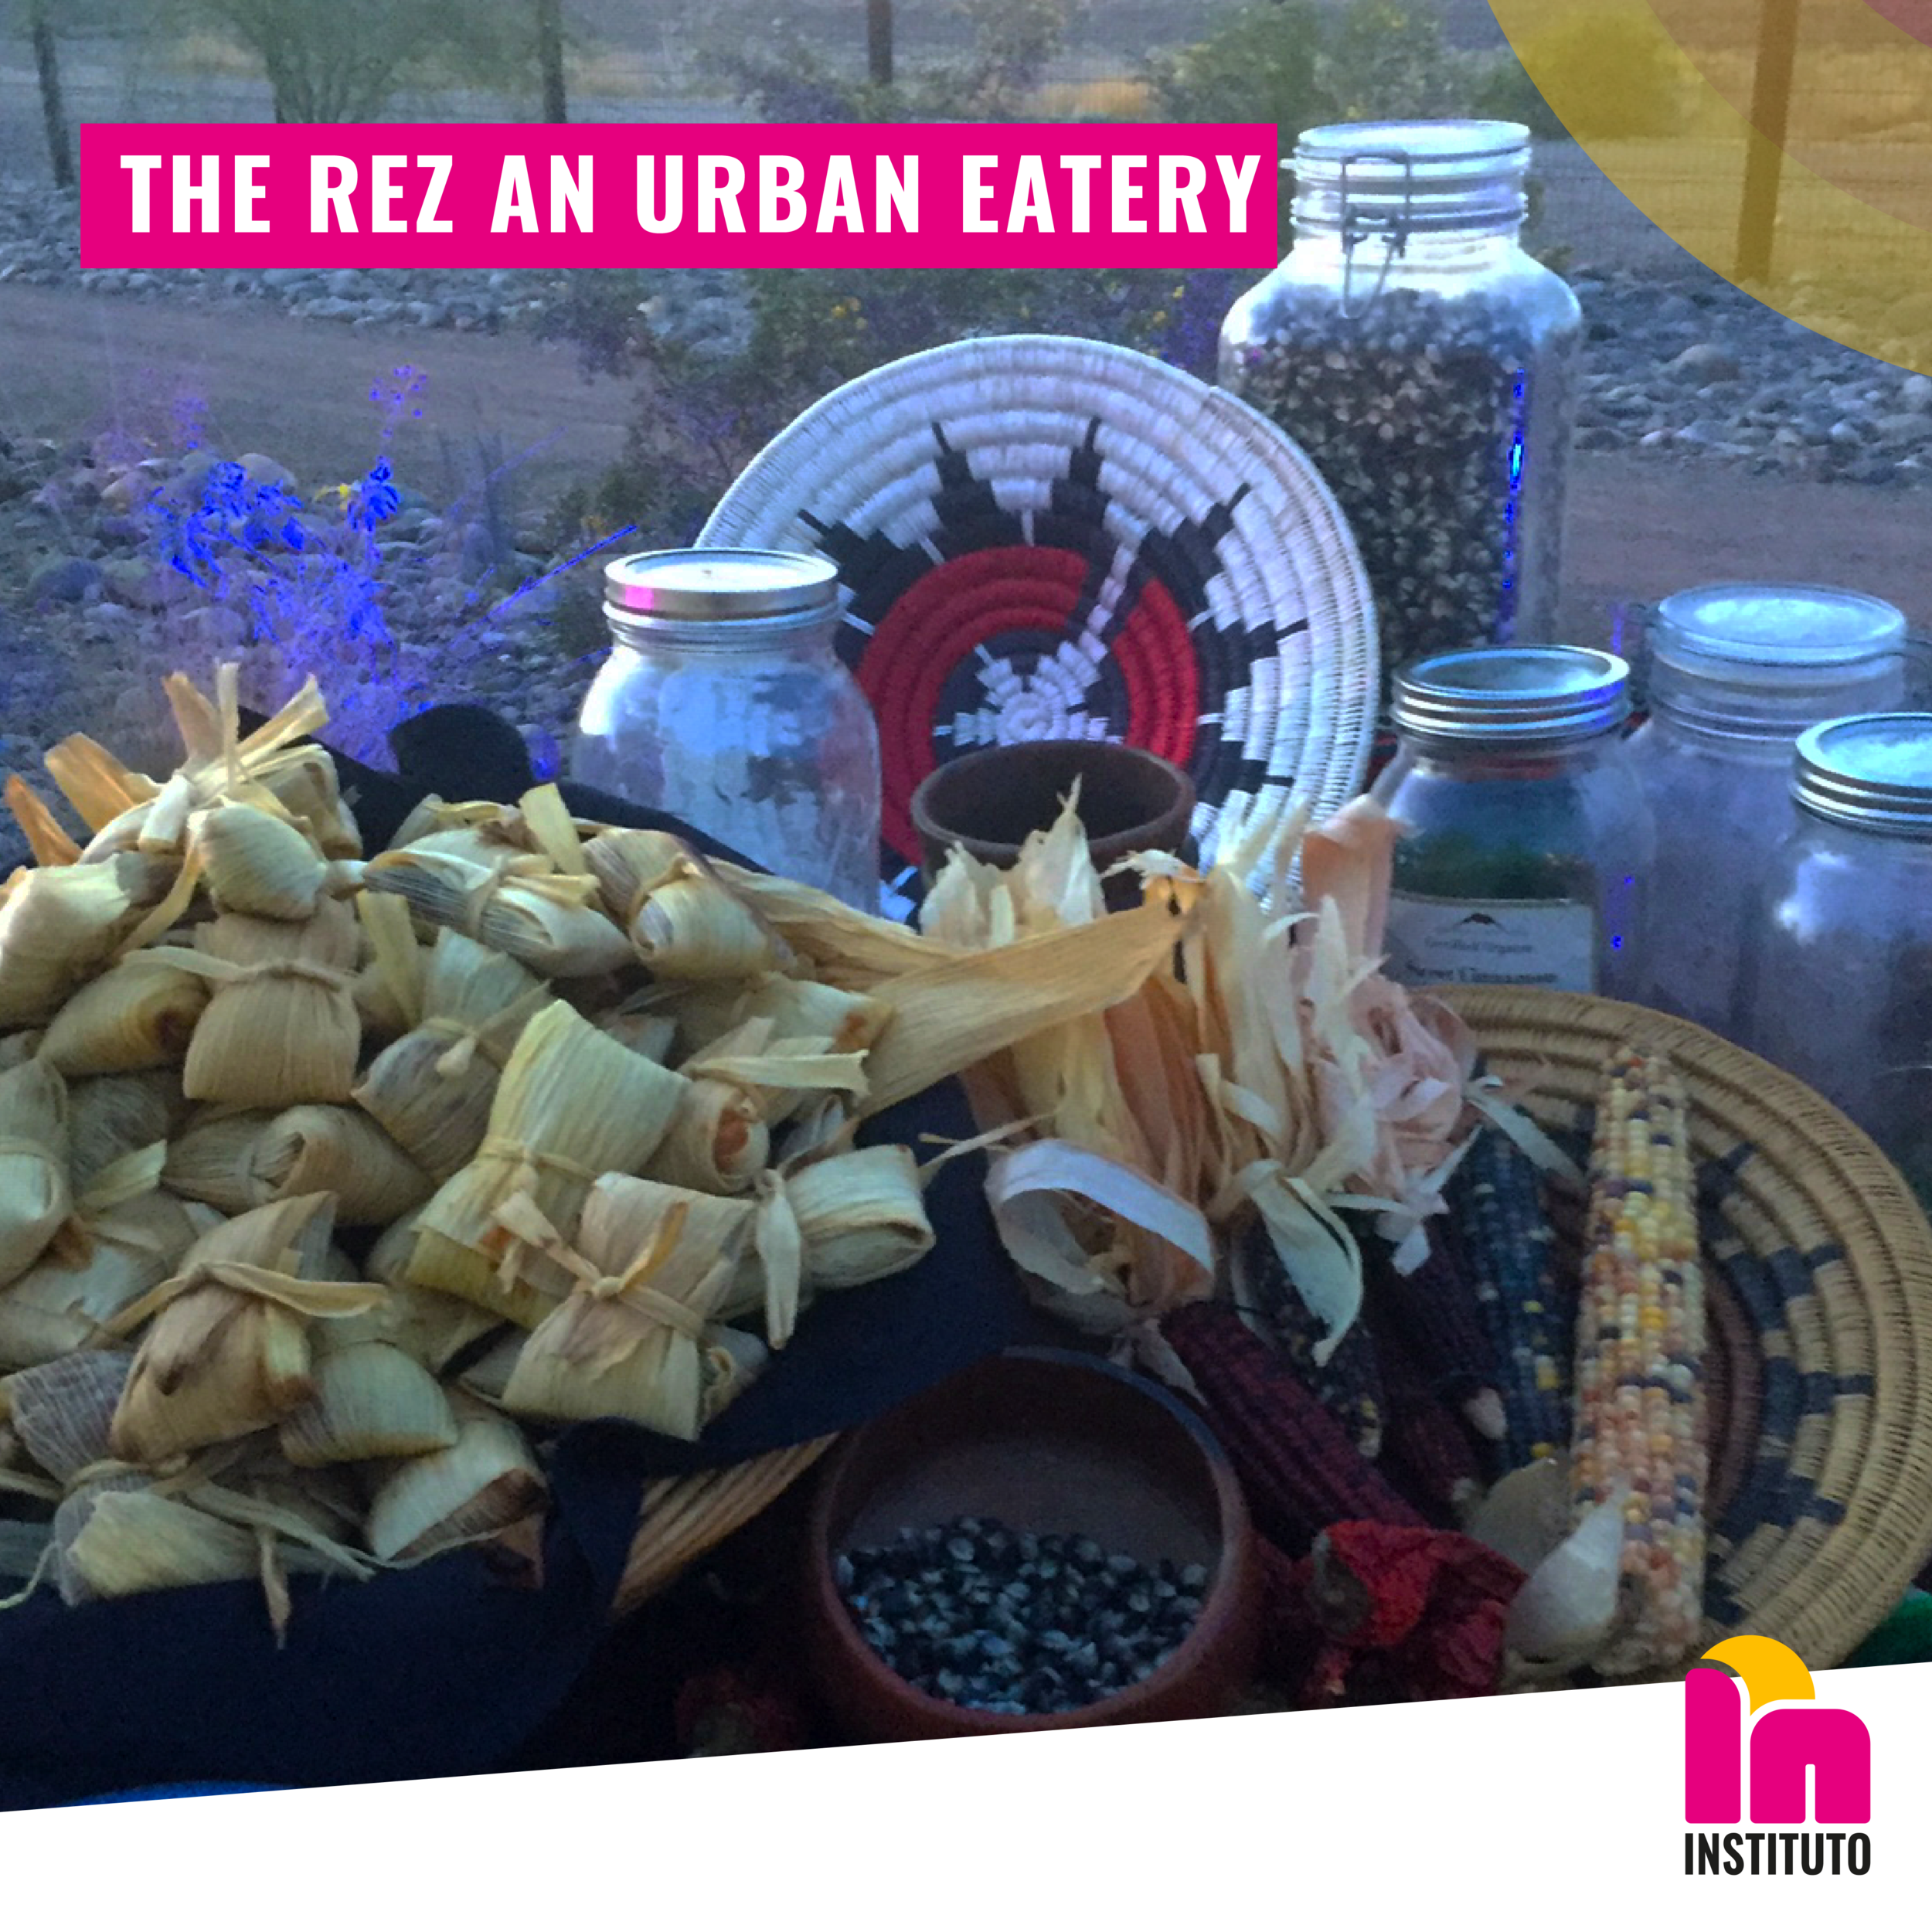 Enjoy a menu inspired by the Sonoran Desert and crafted by The REZ an Urban Eatery